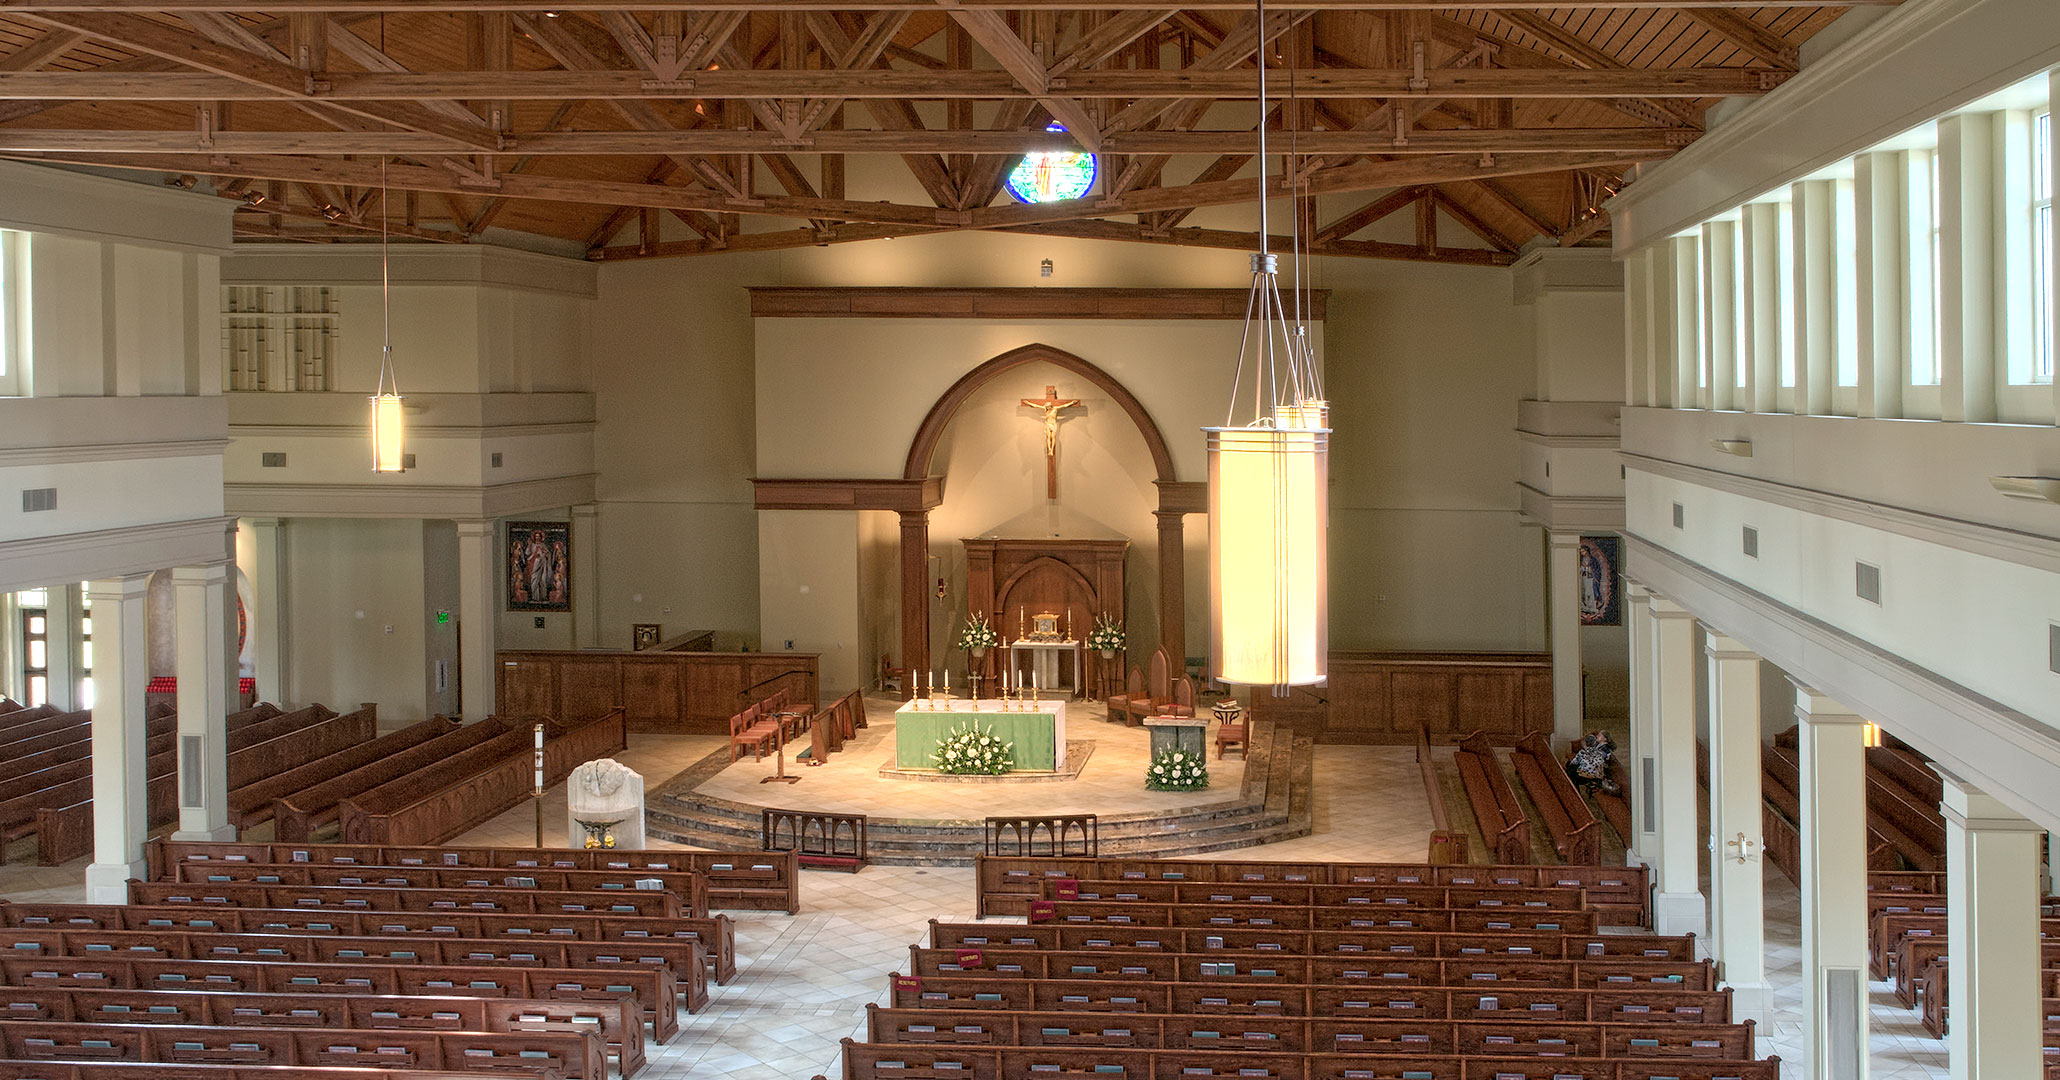 Boudreaux architects worked with St. Mark Catholic Church to create a rich interior.